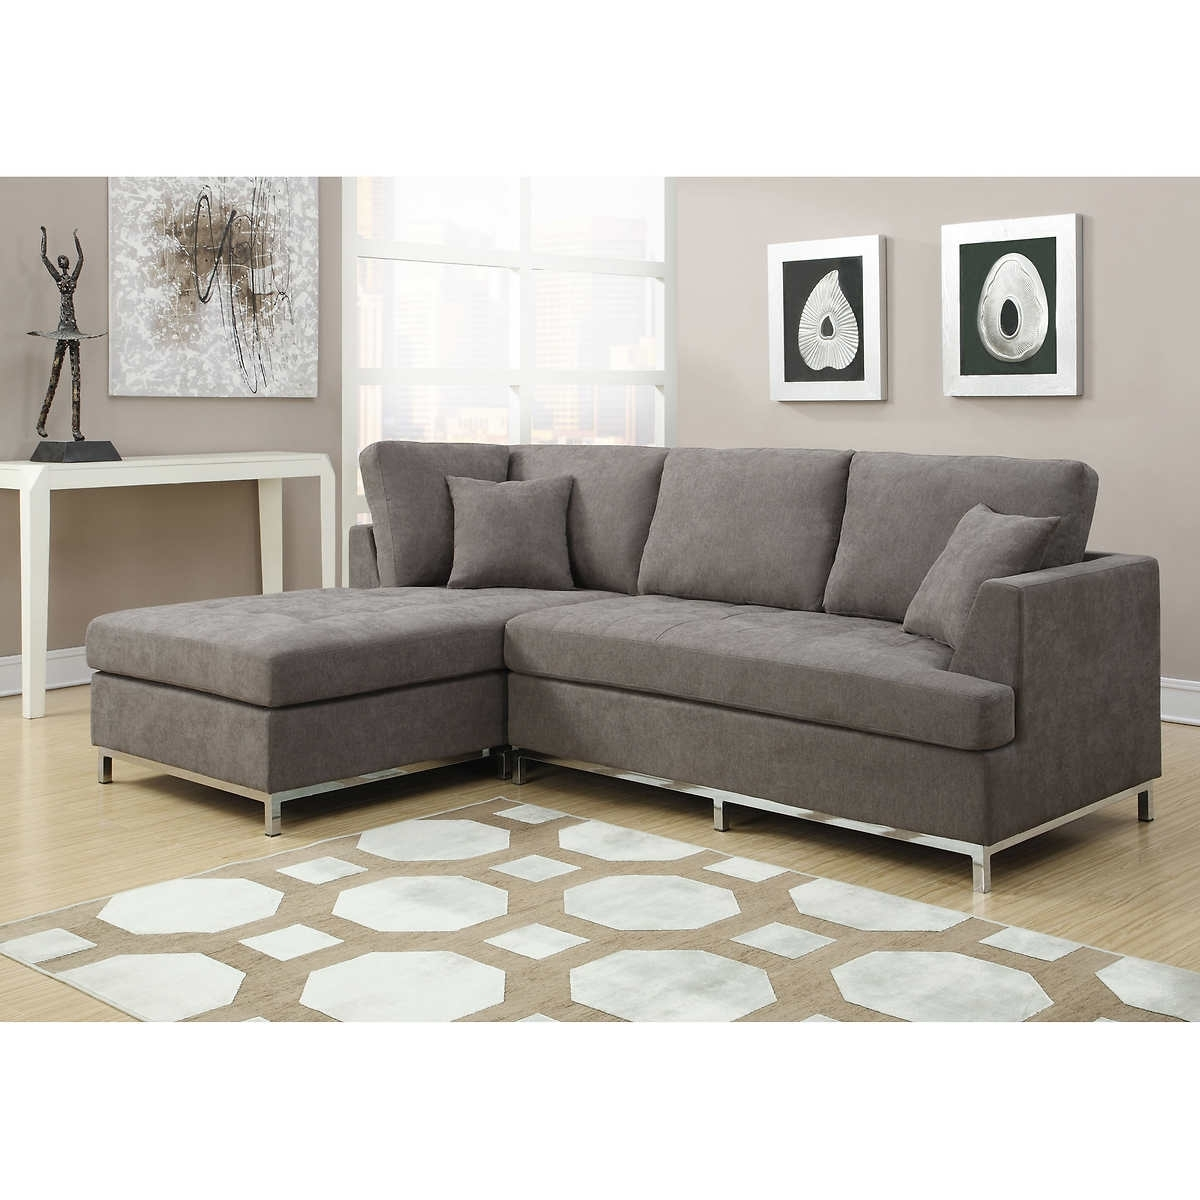 Gray Sectional Sofa Costco – Home Design Ideas And Pictures Regarding 2018 Tucson Sectional Sofas (View 7 of 20)